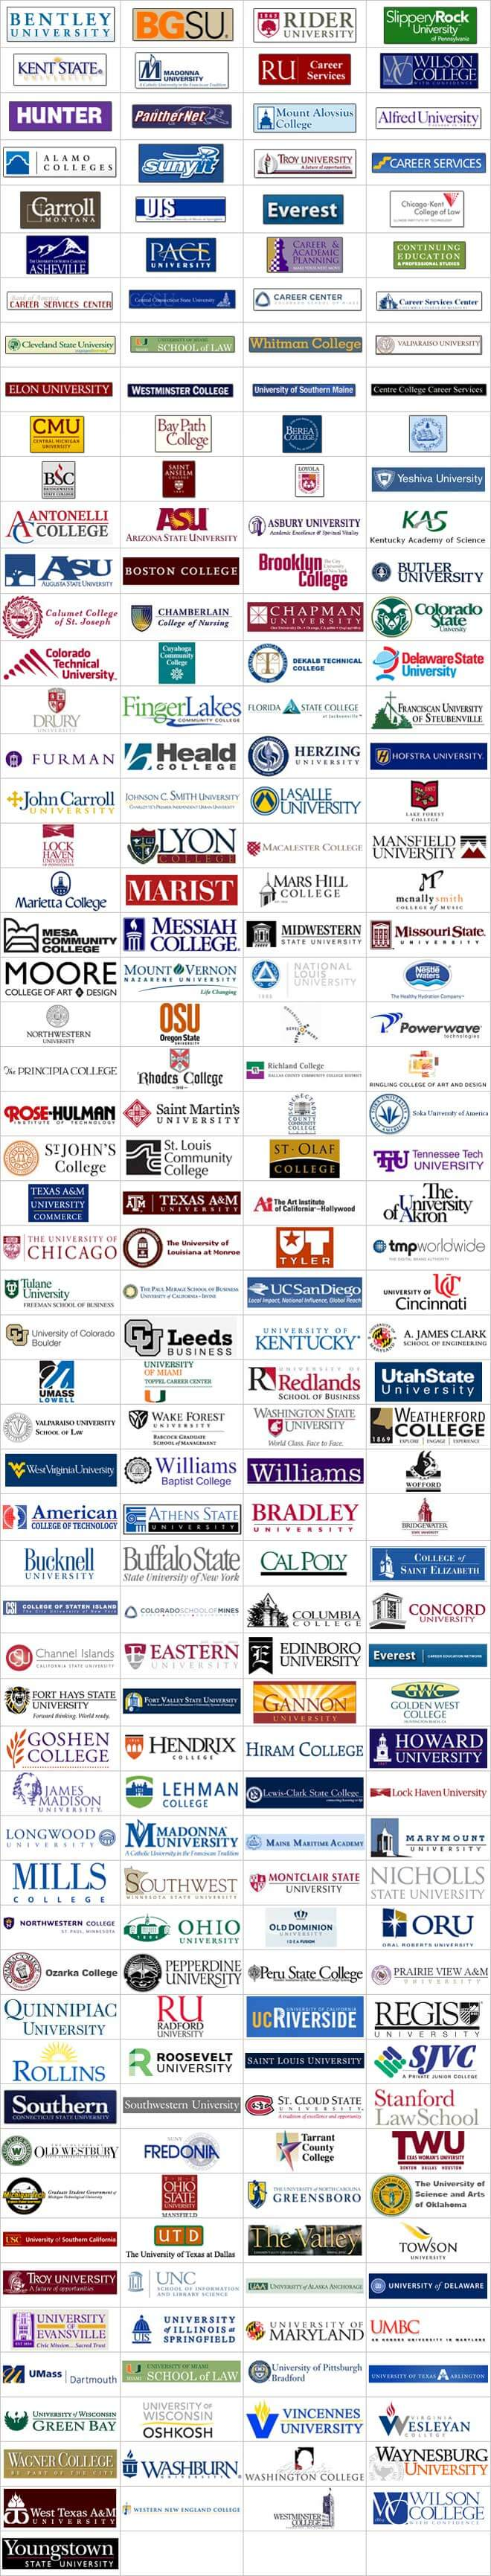 RECOGNITIONS: Alfred University, Athens State University, Bay Path College, Bentley University, Berea College, Bowling Green State University, Bridgewater State College, Buffalo State College, California Polytechnic State University, Carroll College, Central Connecticut State University, Central Michigan University, Centre College, Chicago-Kent College of Law, Cleveland State University, College of Staten Island, Colorado School of Mines, Columbia College, Corinthian Colleges, Inc., Elon University, Gannon University, Goshen College, Hunter College, James Madison University, John Carroll University, Kent State University, Kentucky Wesleyan College, Lehman College, Lewis-Clark State College, Loyola University Chicago, Macalester College, Madonna University, Maine Maritime Academy, Marist College, Mount Aloysius College, Nicholls State University, Northwestern College, Oral Roberts University, Pace University, Radford University, Regents of the University of Colorado, Rensselaer Polytechnic Institute, Rider University, Roosevelt University, Saint Anselm College, Saint Louis University, Slippery Rock University, Southern Connecticut State University, St. Cloud State University, St. Philip's College, State University of New York Institute of Technology, SUNY Fredonia, The Regents of the University of California, The University of North Carolina at Greensboro, Troy University, University of Alaska Anchorage, University of California, Riverside, University of Delaware, University of Illinois at Springfield, University of Illinois Roy J. Carver Biotechnology, University of Miami School of Law, University of North Carolina at Asheville, University of North Carolina at Chapel Hill, University of Oklahoma, University of Pittsburgh at Bradford, University of Southern Maine, Valparaiso University, Waynesburg University, Western New England College School of Law, Westminster College, Whitman College, Wilson College, Yeshiva University.